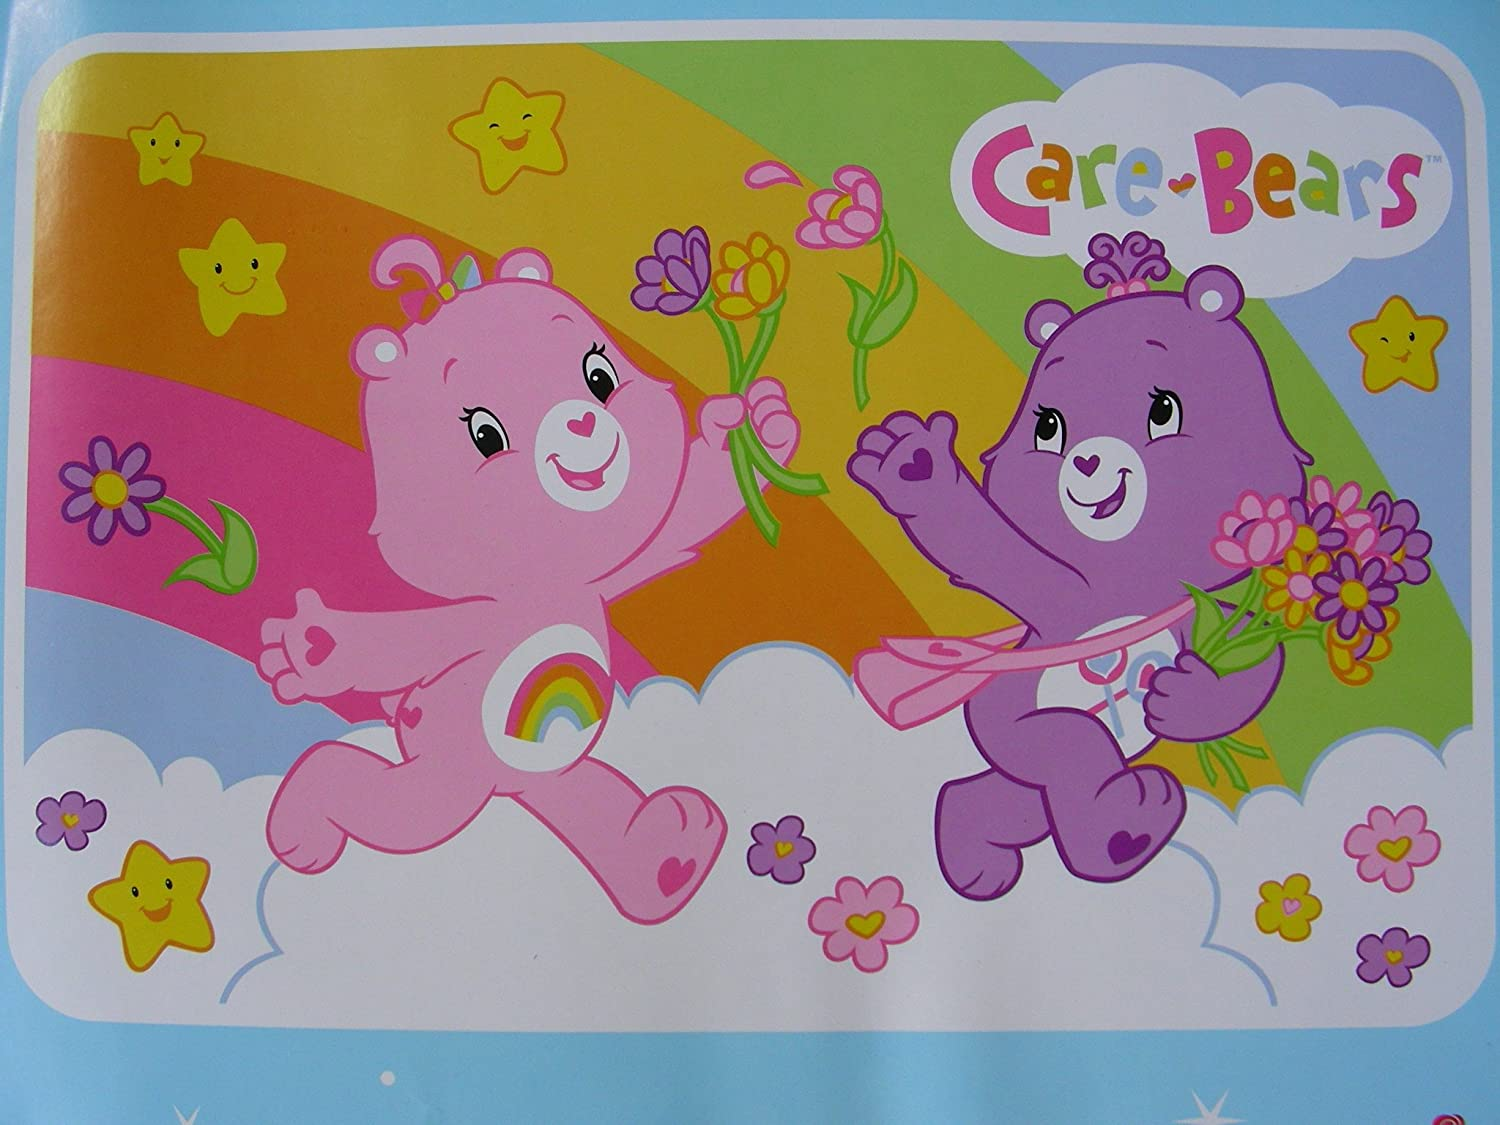 48 x 72 Rug JPI care-bears-rug00950-fbu Super Soft /& Thick Surface Carebears Rug Officially Licensed 100/% Polyester